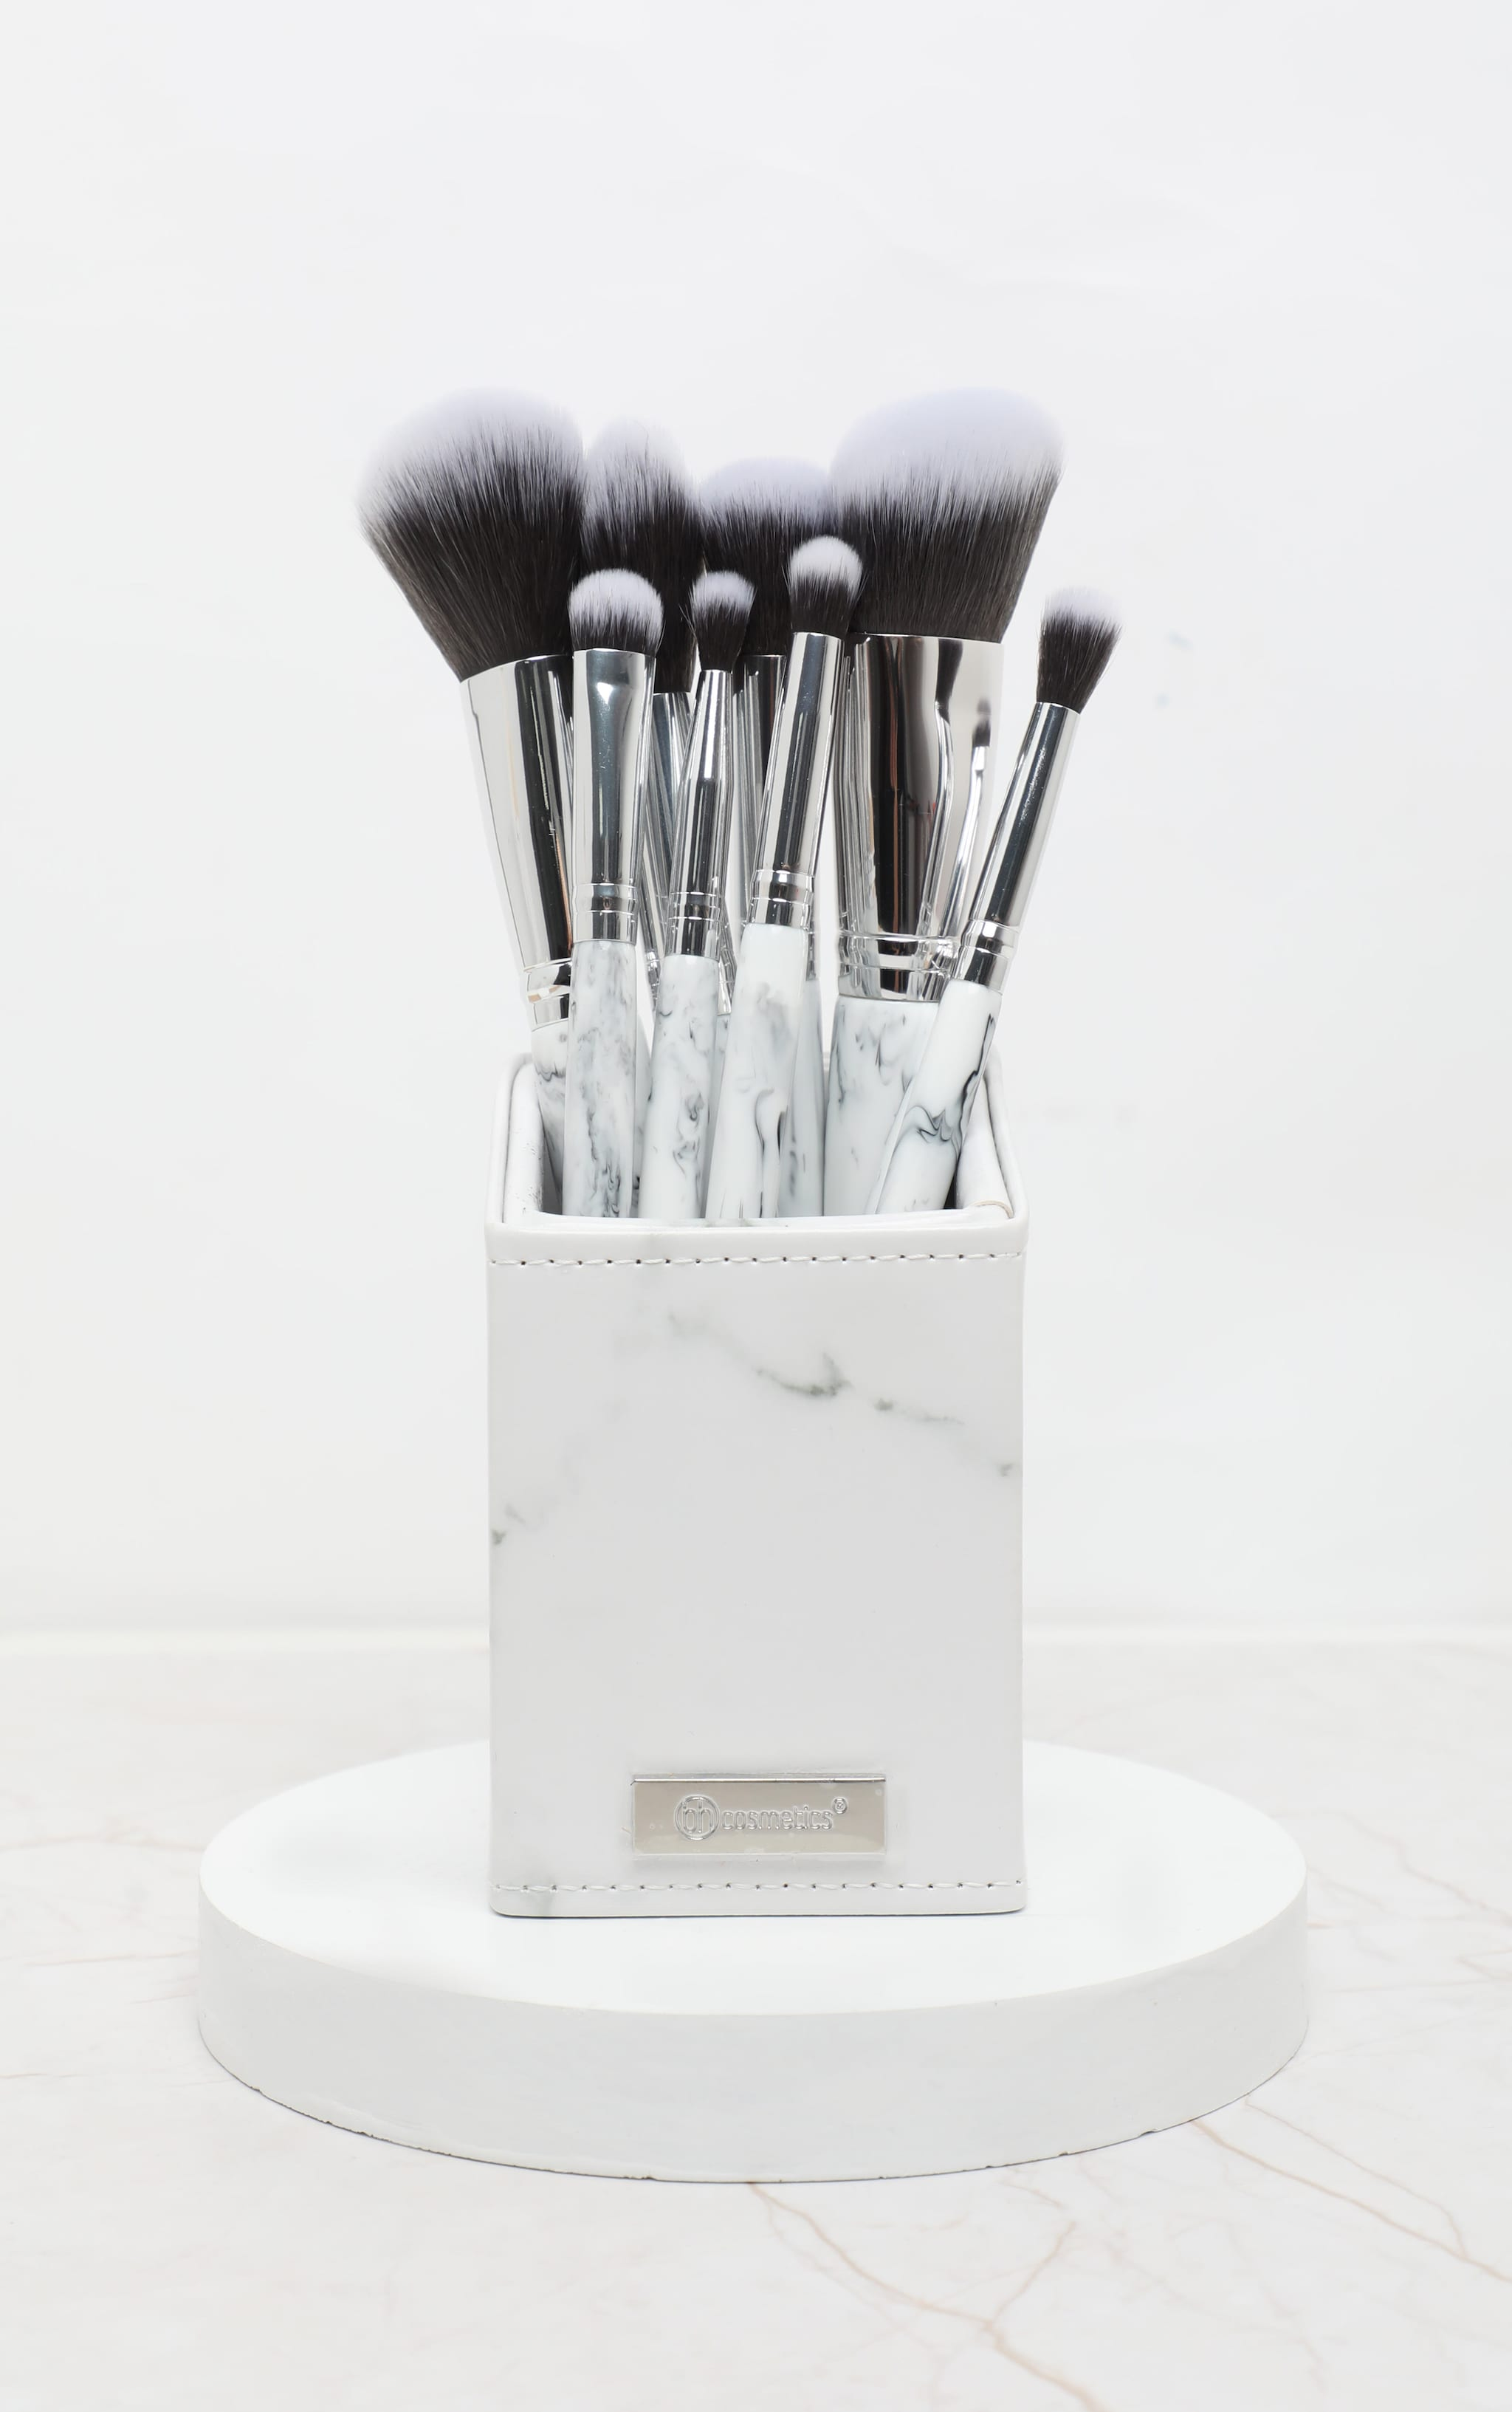 BH Cosmetics White Marble 9 Piece Brush Set with Holder 1